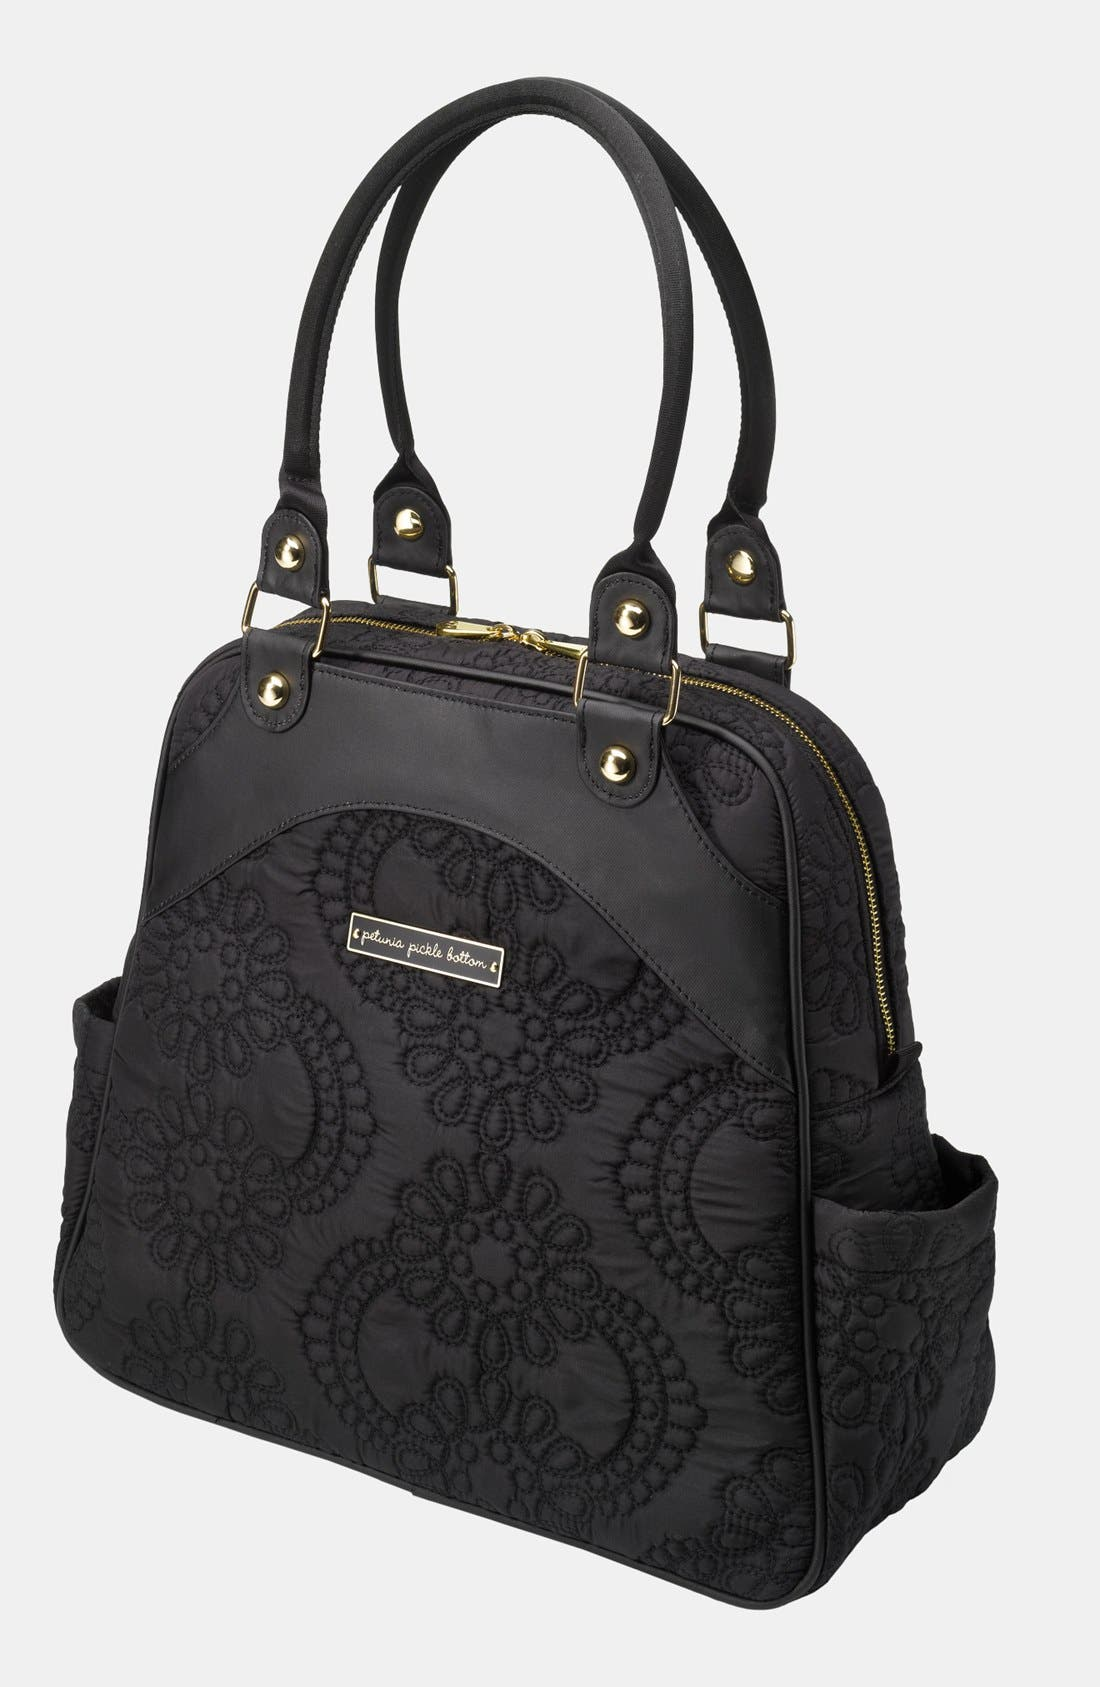 'Embossed Sashay' Diaper Bag,                             Main thumbnail 1, color,                             Central Park North Stop